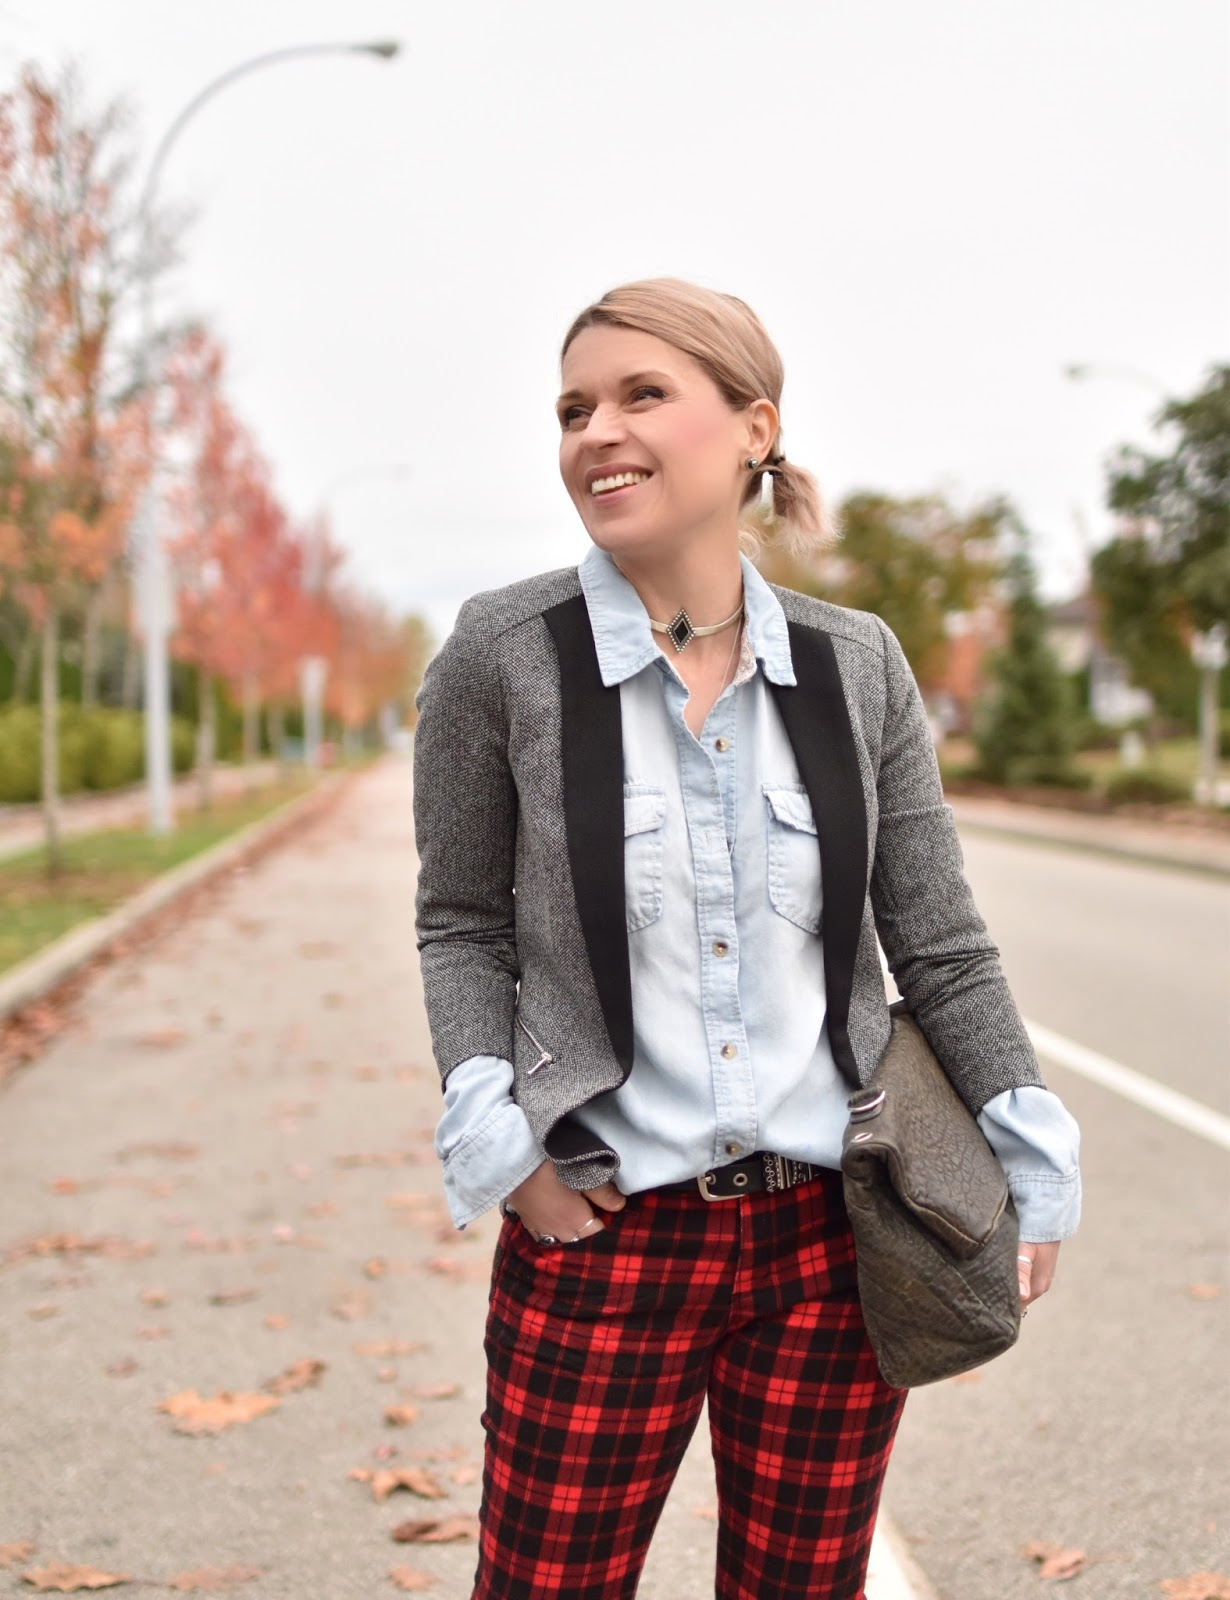 Outfit inspiration c/o Monika Faulkner - red plaid jeans, chambray shirt, shawl-collar blazer